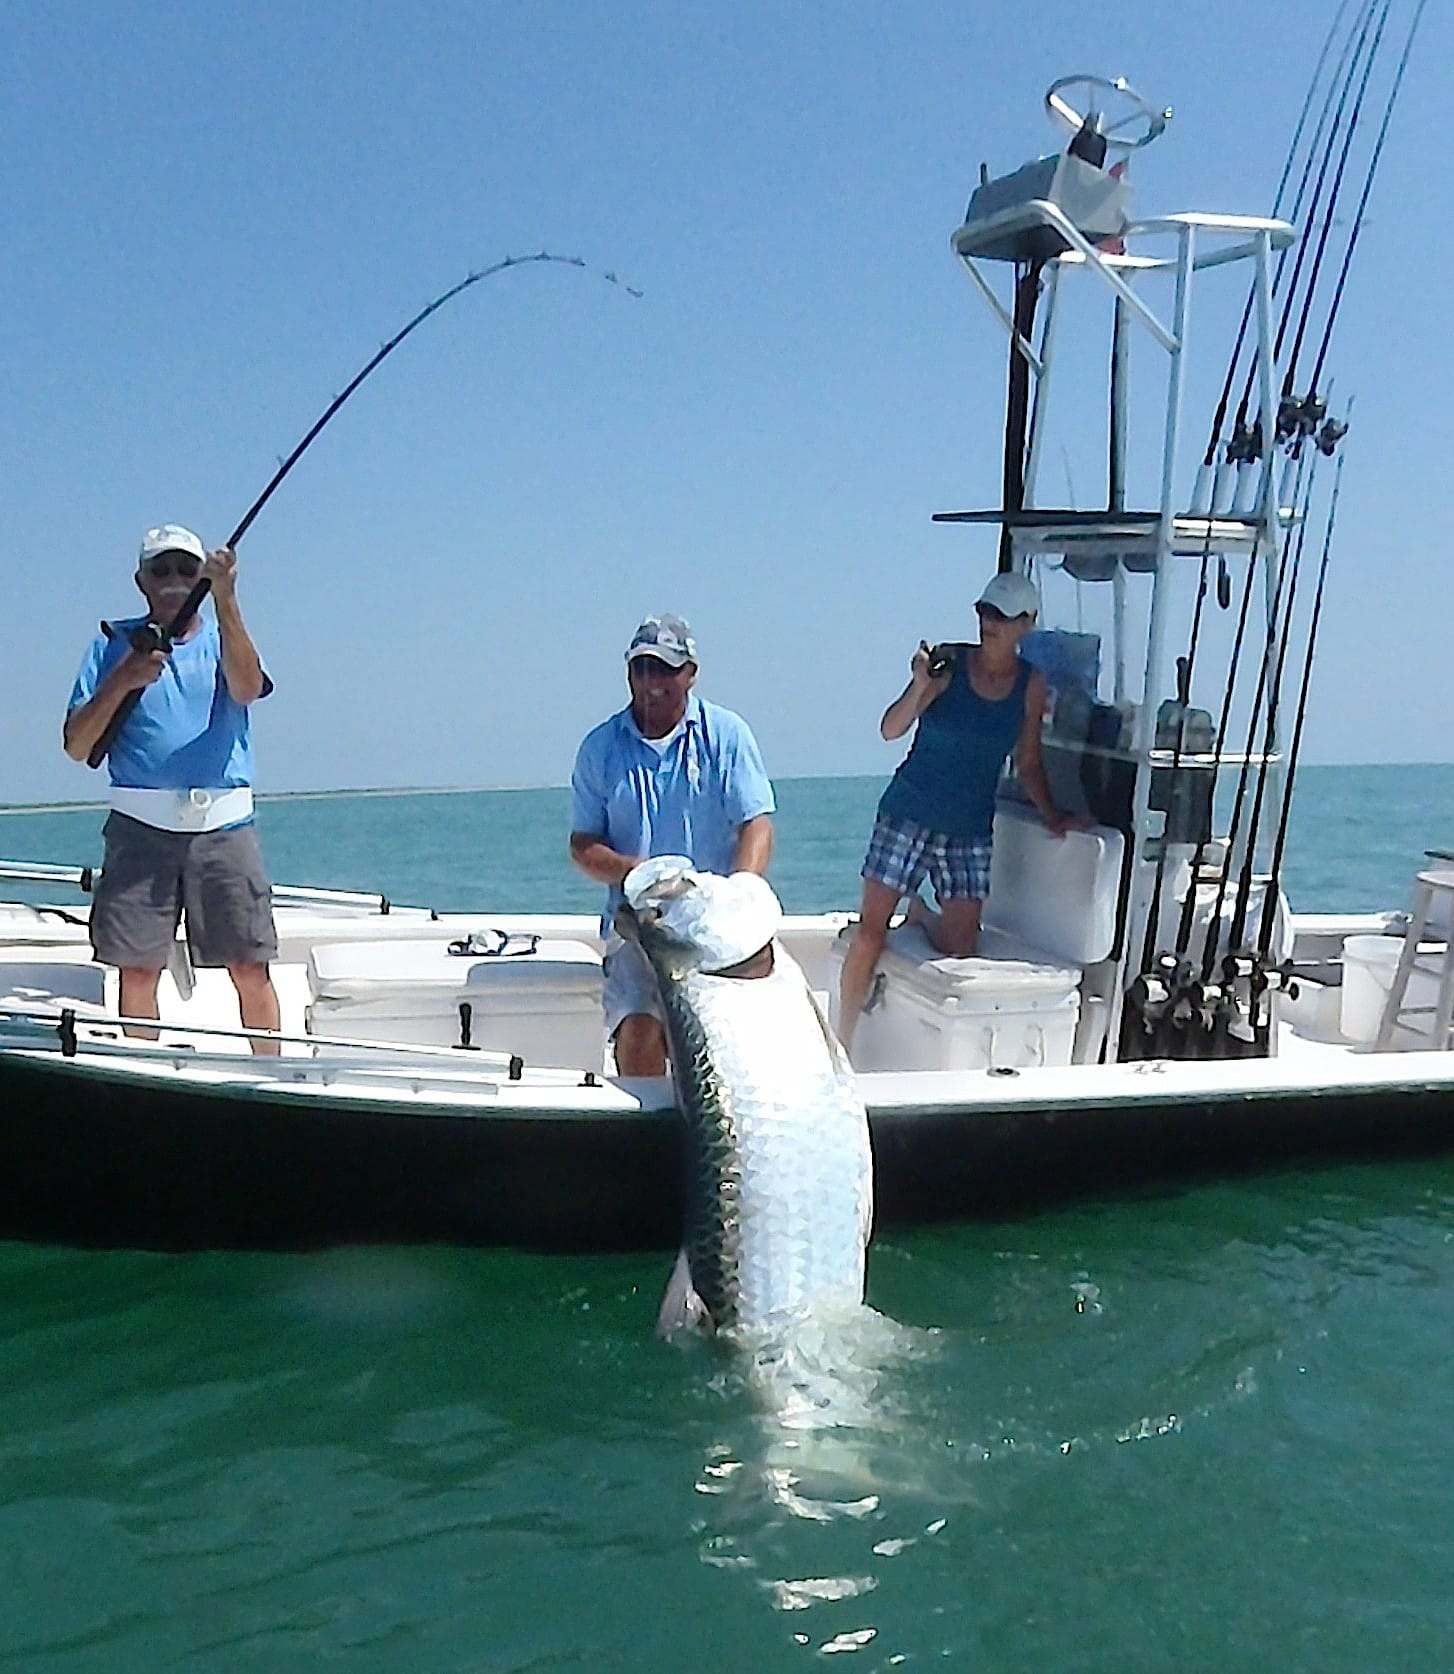 Fort myers fishing report 10 30 14 sanibel tarpon for Tarpon fishing charters